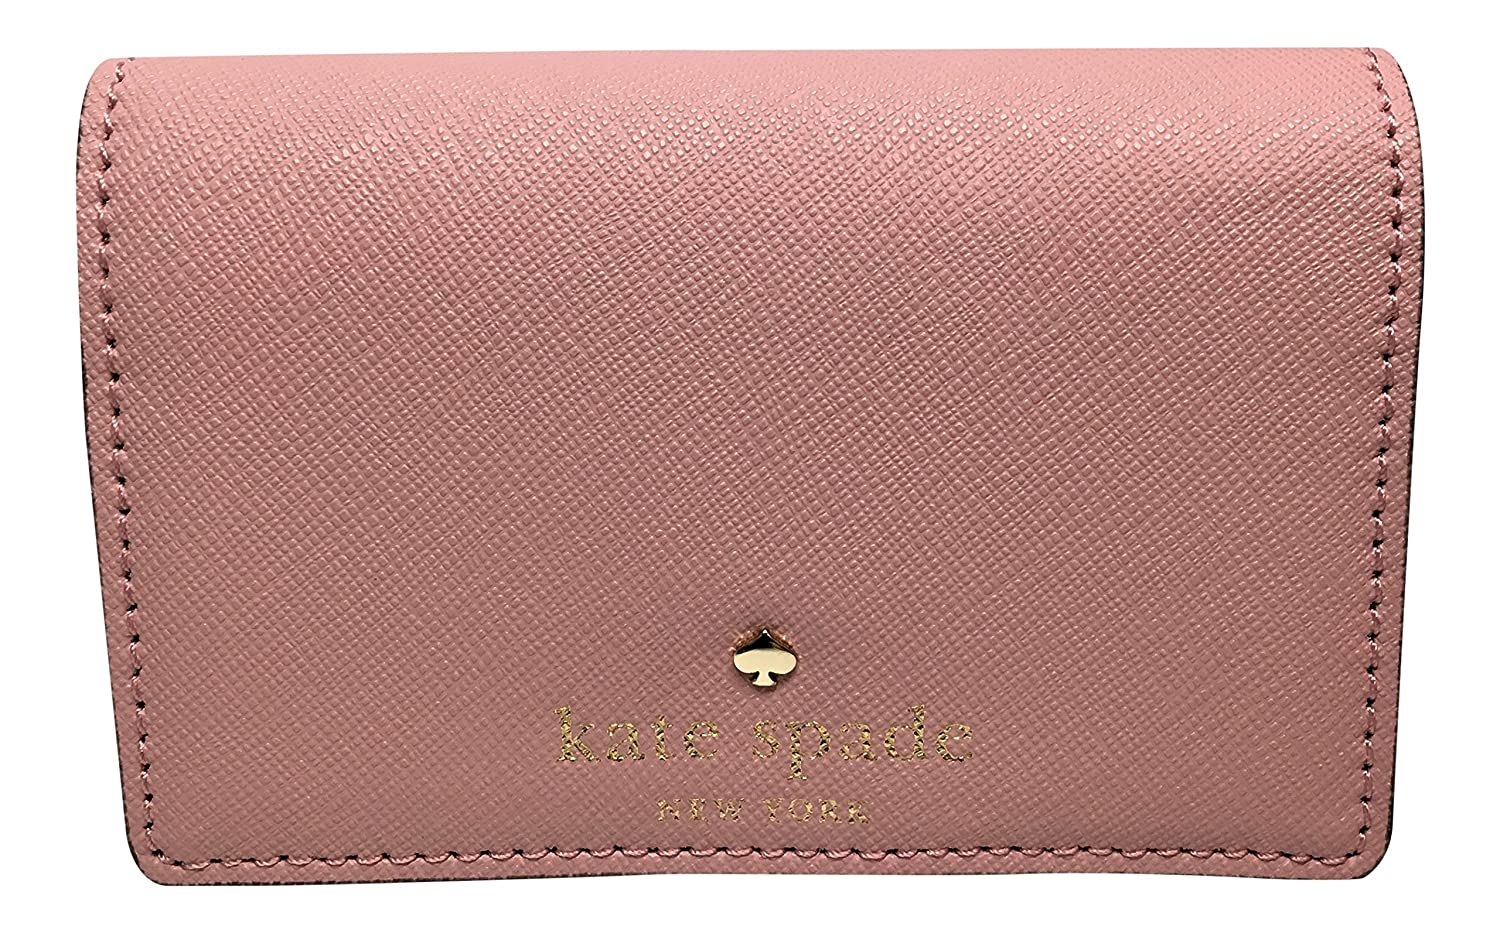 Kate Spade New York Mikas Pond Christine Small Leather Wallet / Color: Pink Bonnet (656)